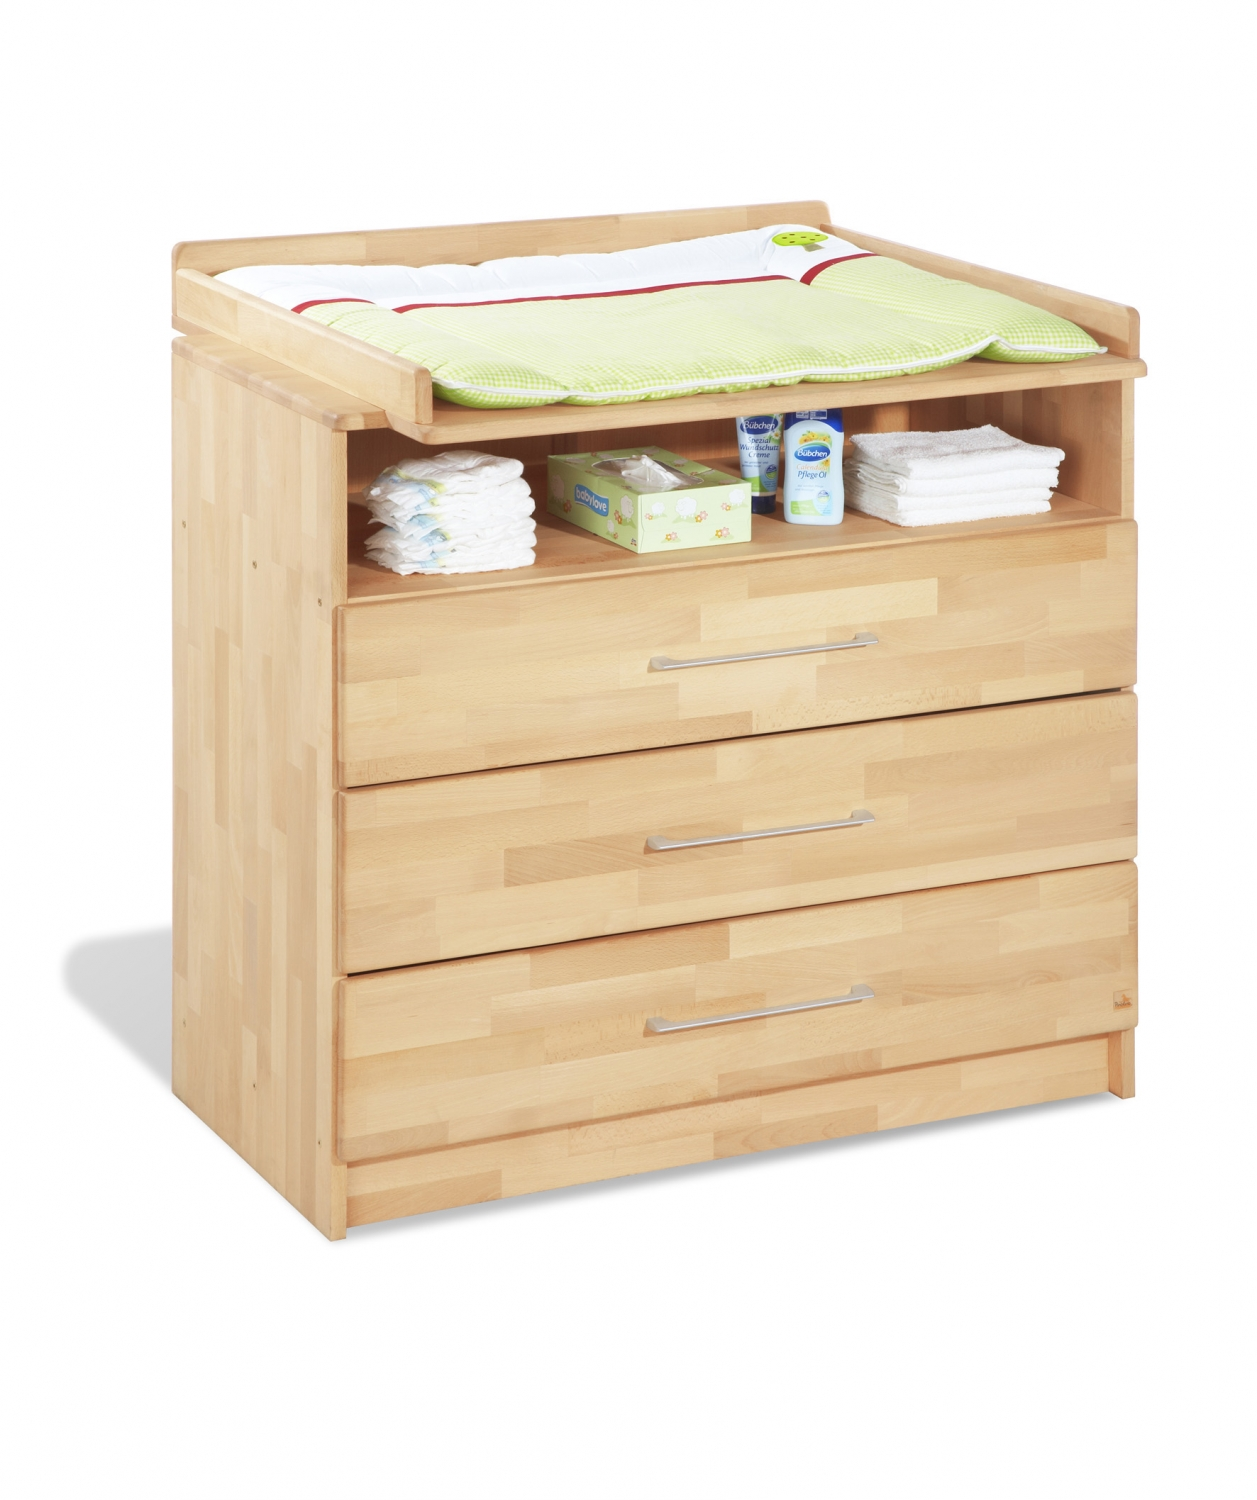 Design Wickelkommode Chambre Bébé Lit Commode Nature Pinolino